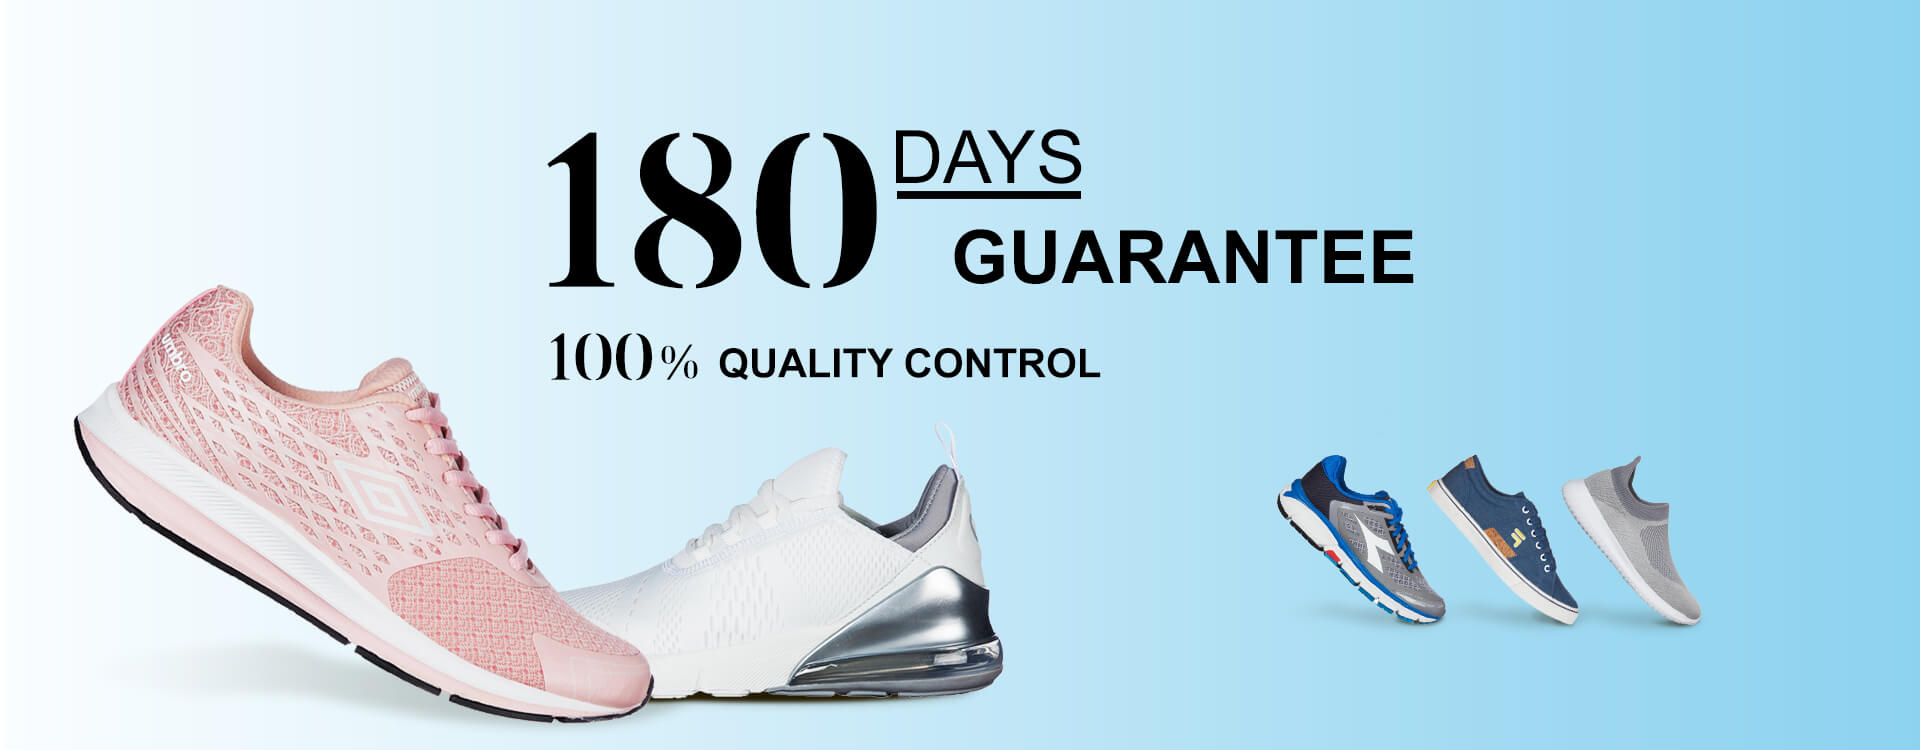 180 DAYS GUARANTEE. 100% QUALITY CONTROL